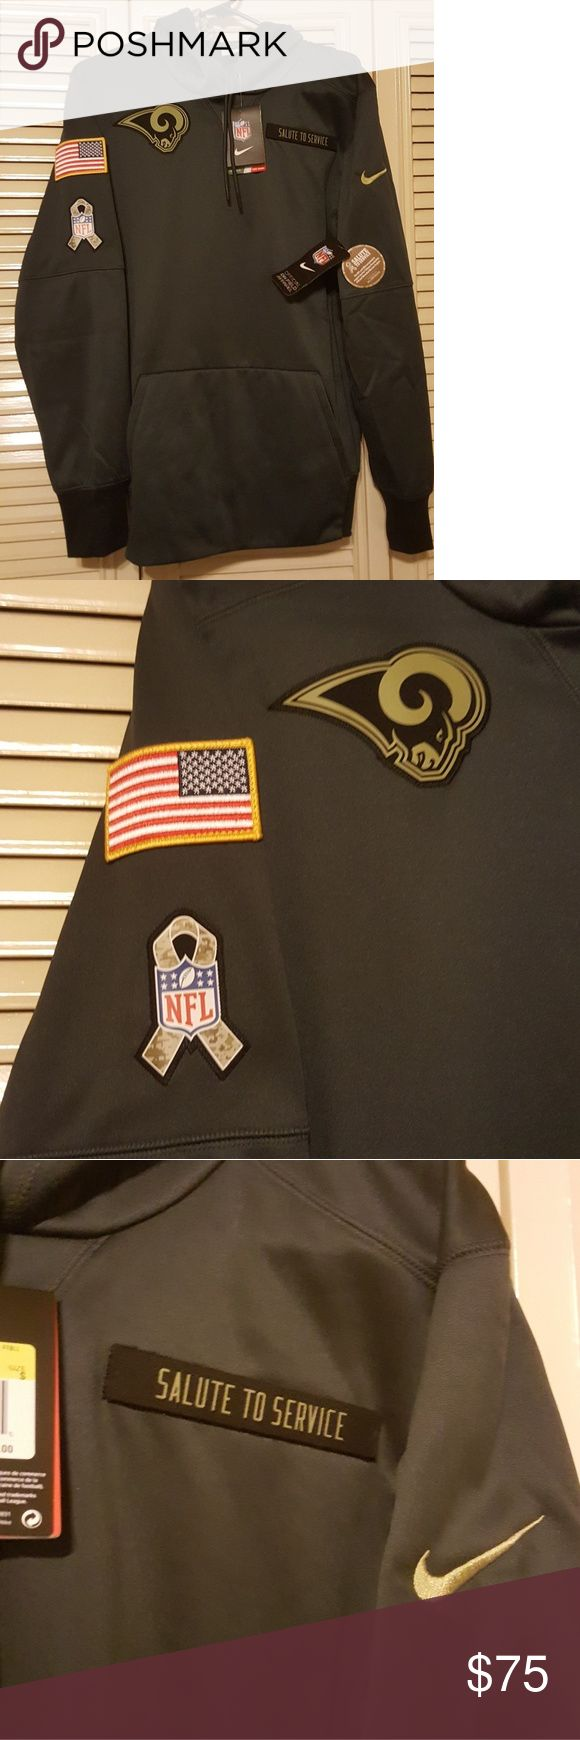 "Nike Rams Military Hoodie NFL Pullover Sweater NEW NIKE Los Angeles RAMS Salute to the Service On-Feild  Therma-Fit Men's Size: Small NEW WITH TAGS Retail Price: $85 GUARANTEED 100% AUTHENTIC   Features; Rams Logo,Military Ribbon & U.S. Flag patch Veclro Removable ""Salute to Service"" Patch Front Pockets Nike Sweaters"